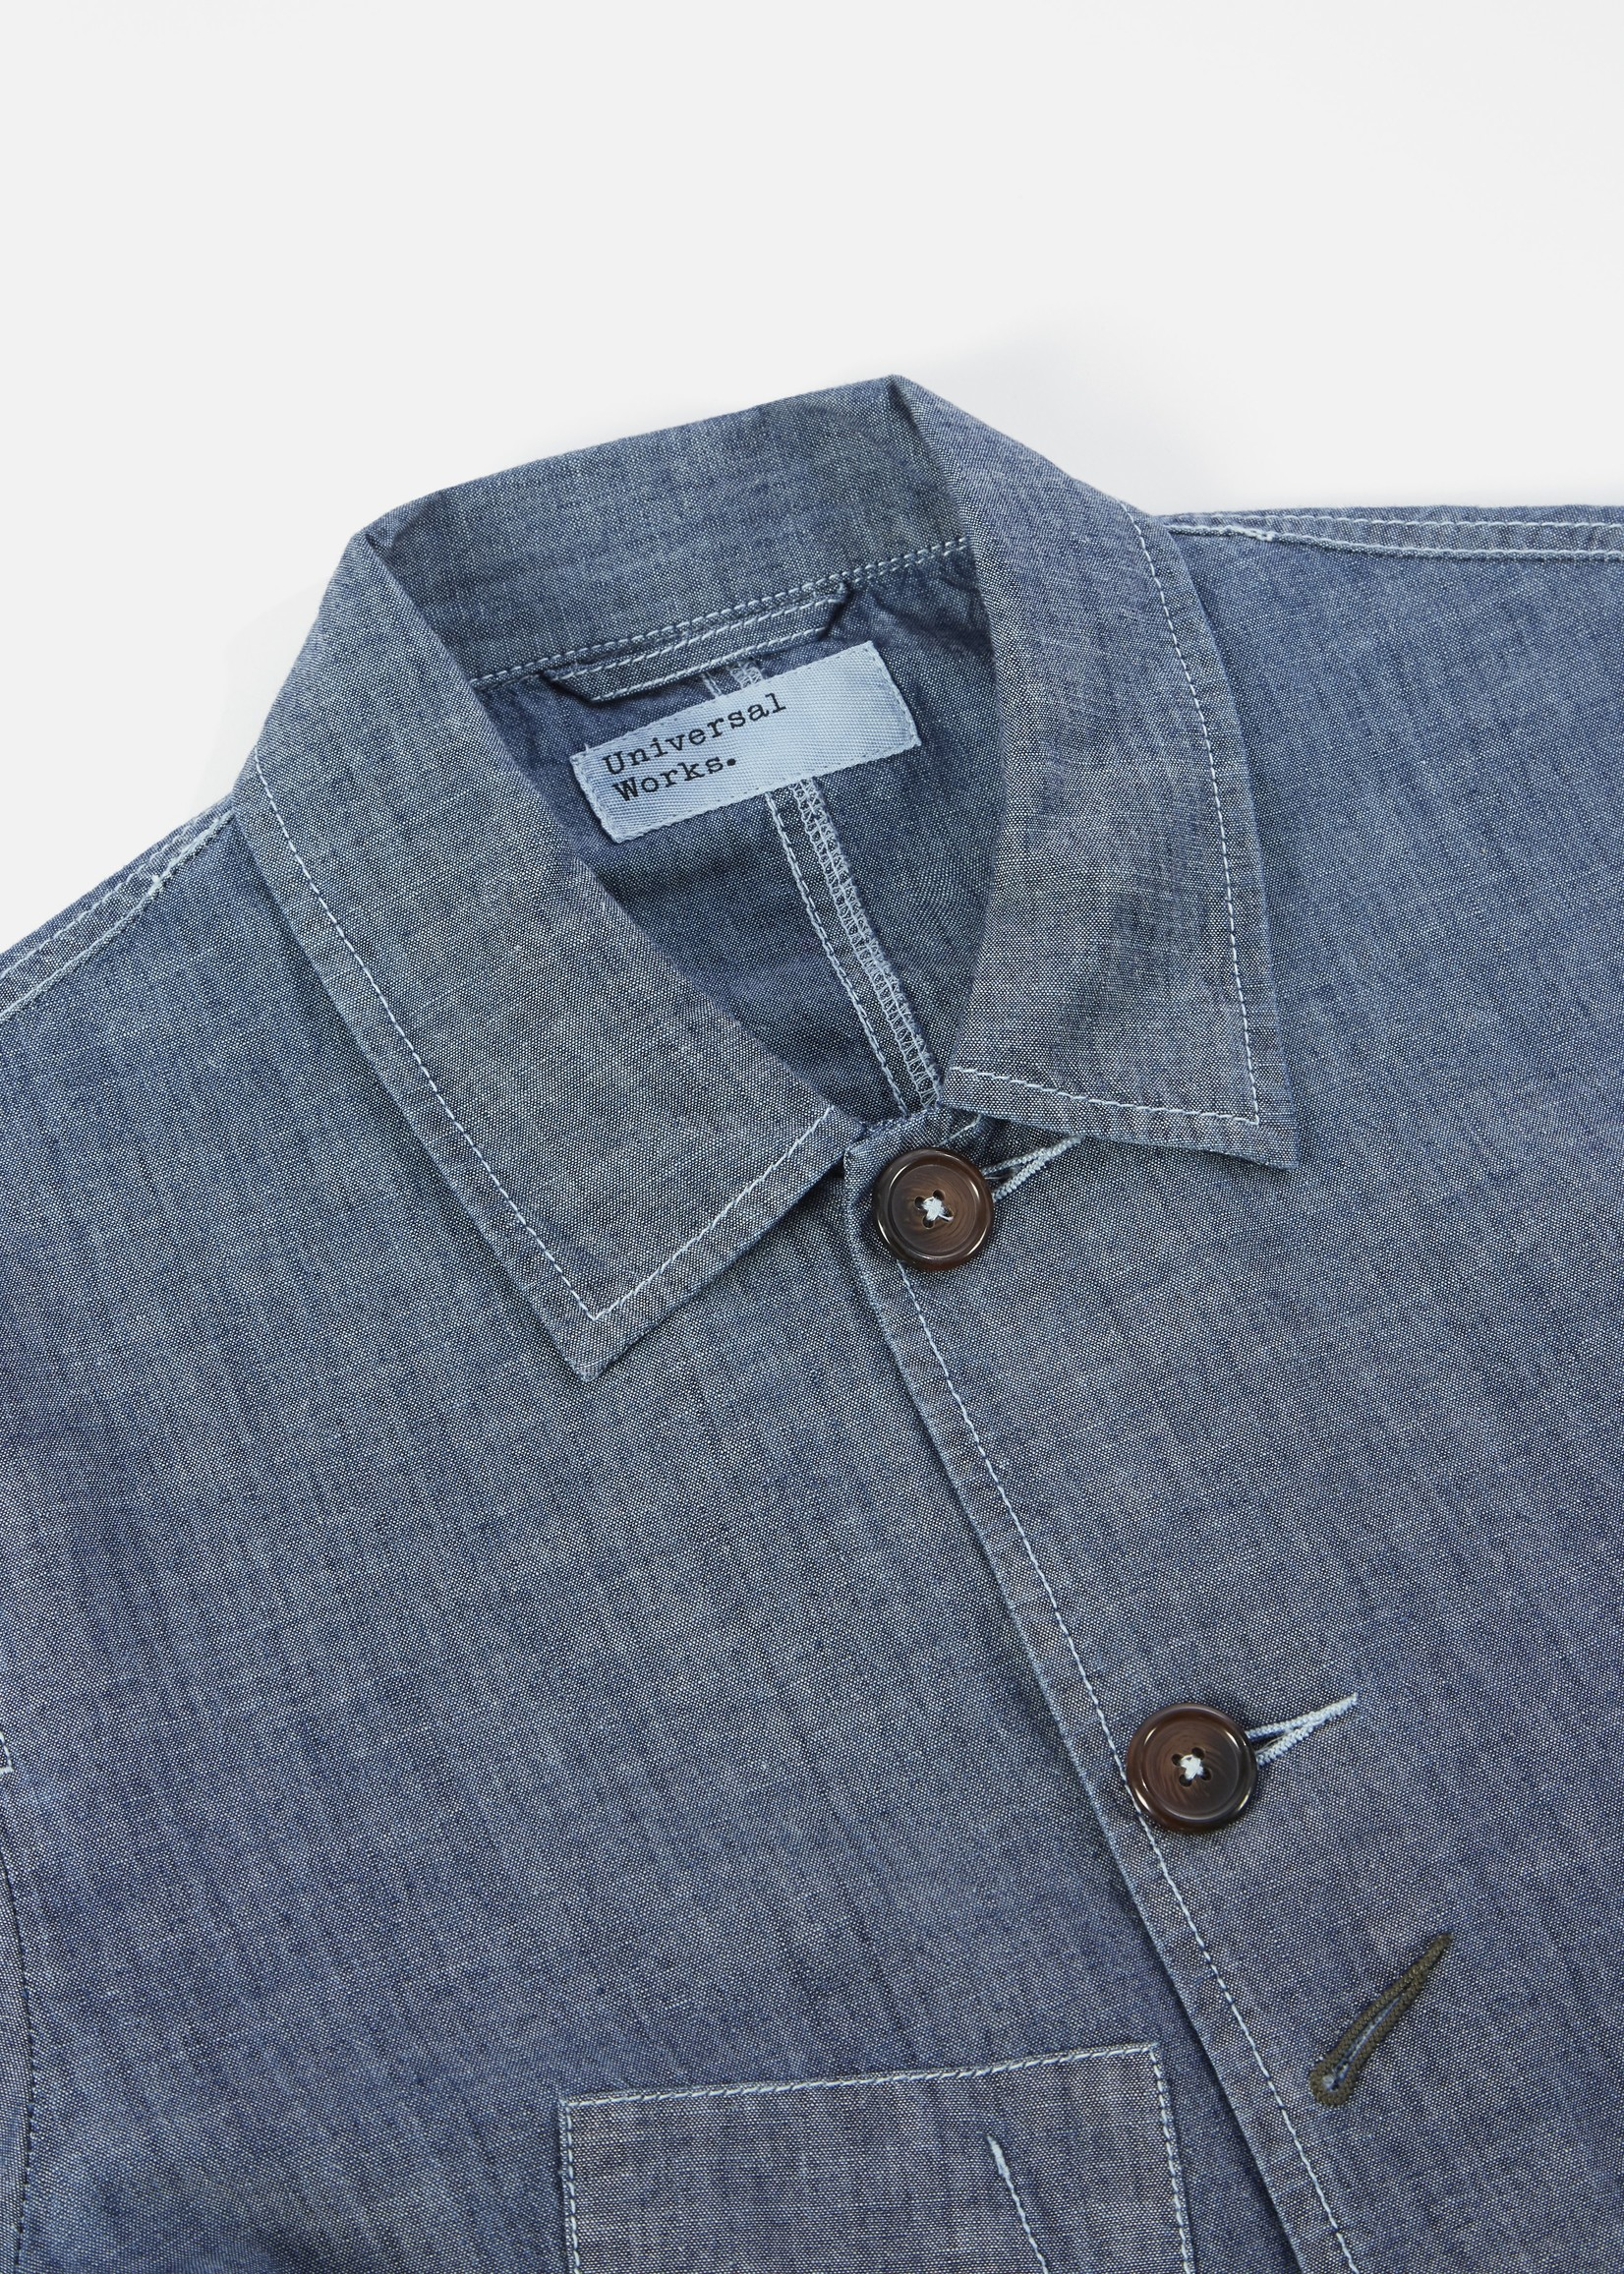 Universal Works Universal Works Bakers Jacket Indigo Patched Chambray